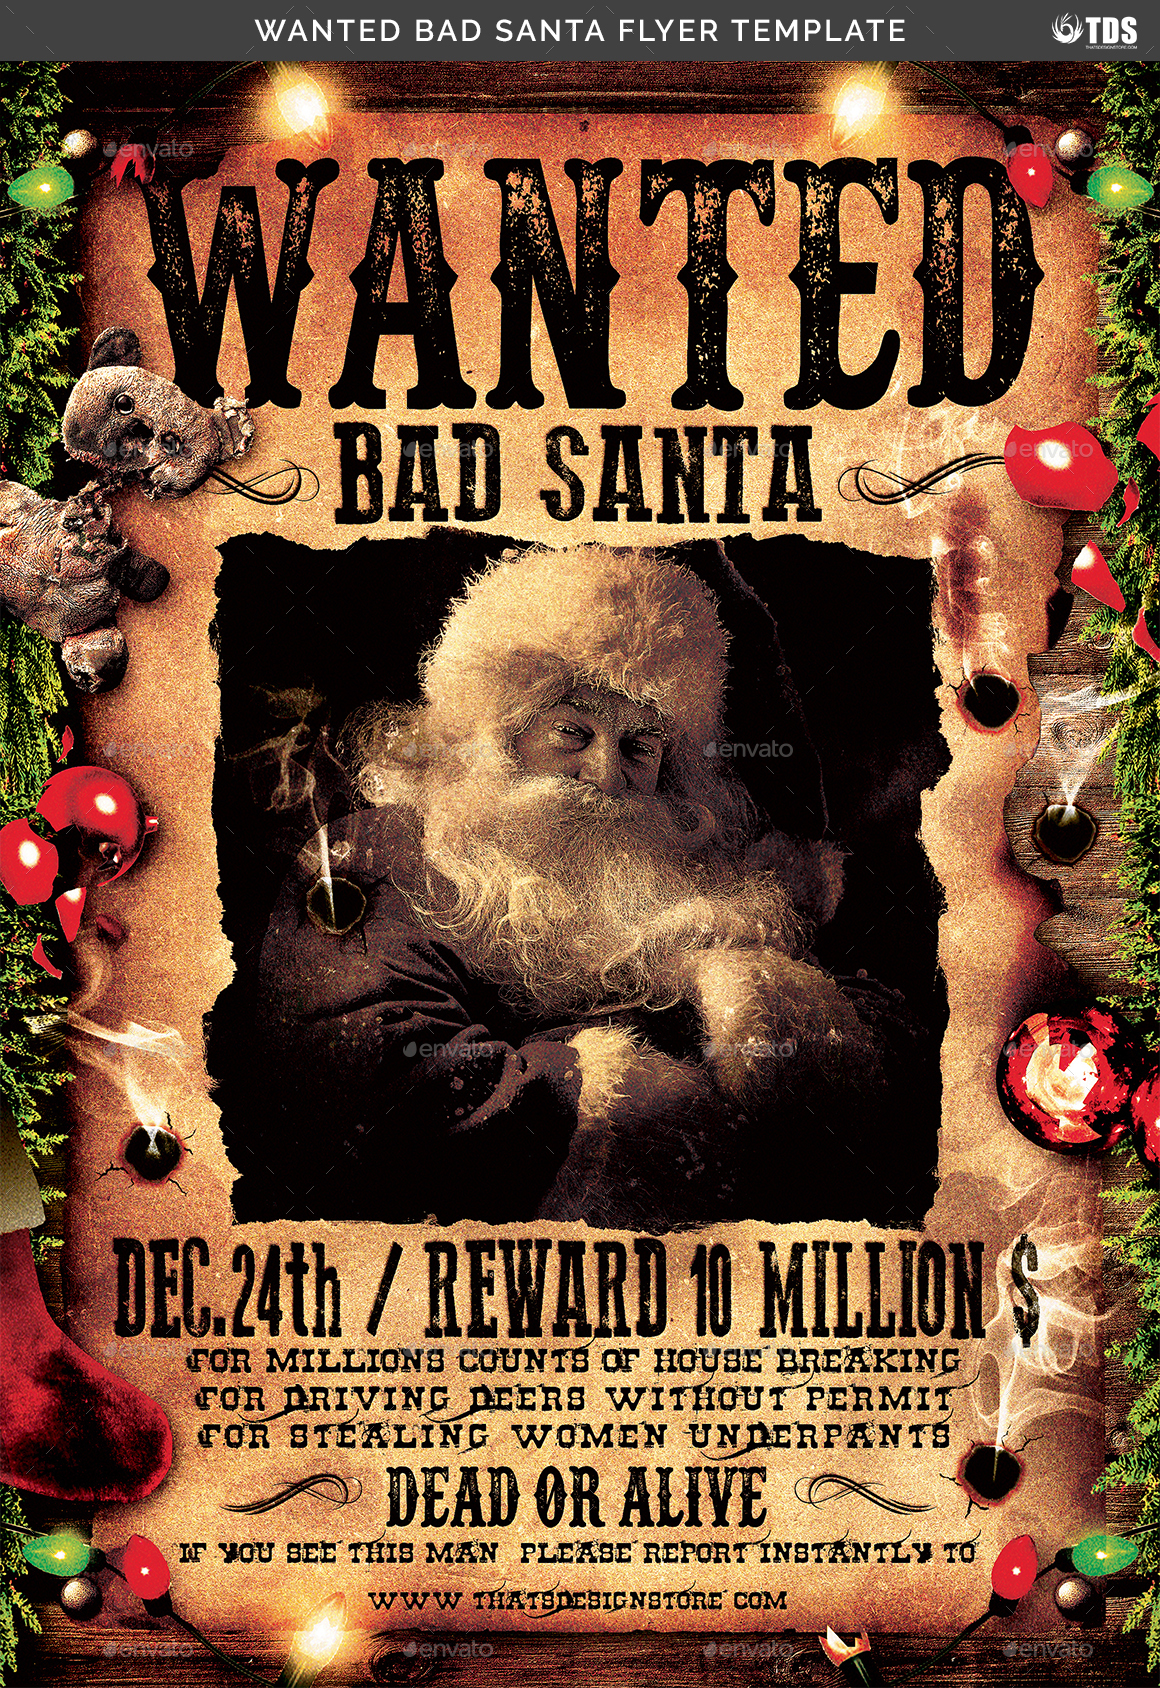 ... Bad Santa Flyer Template  Help Wanted Flyer Template